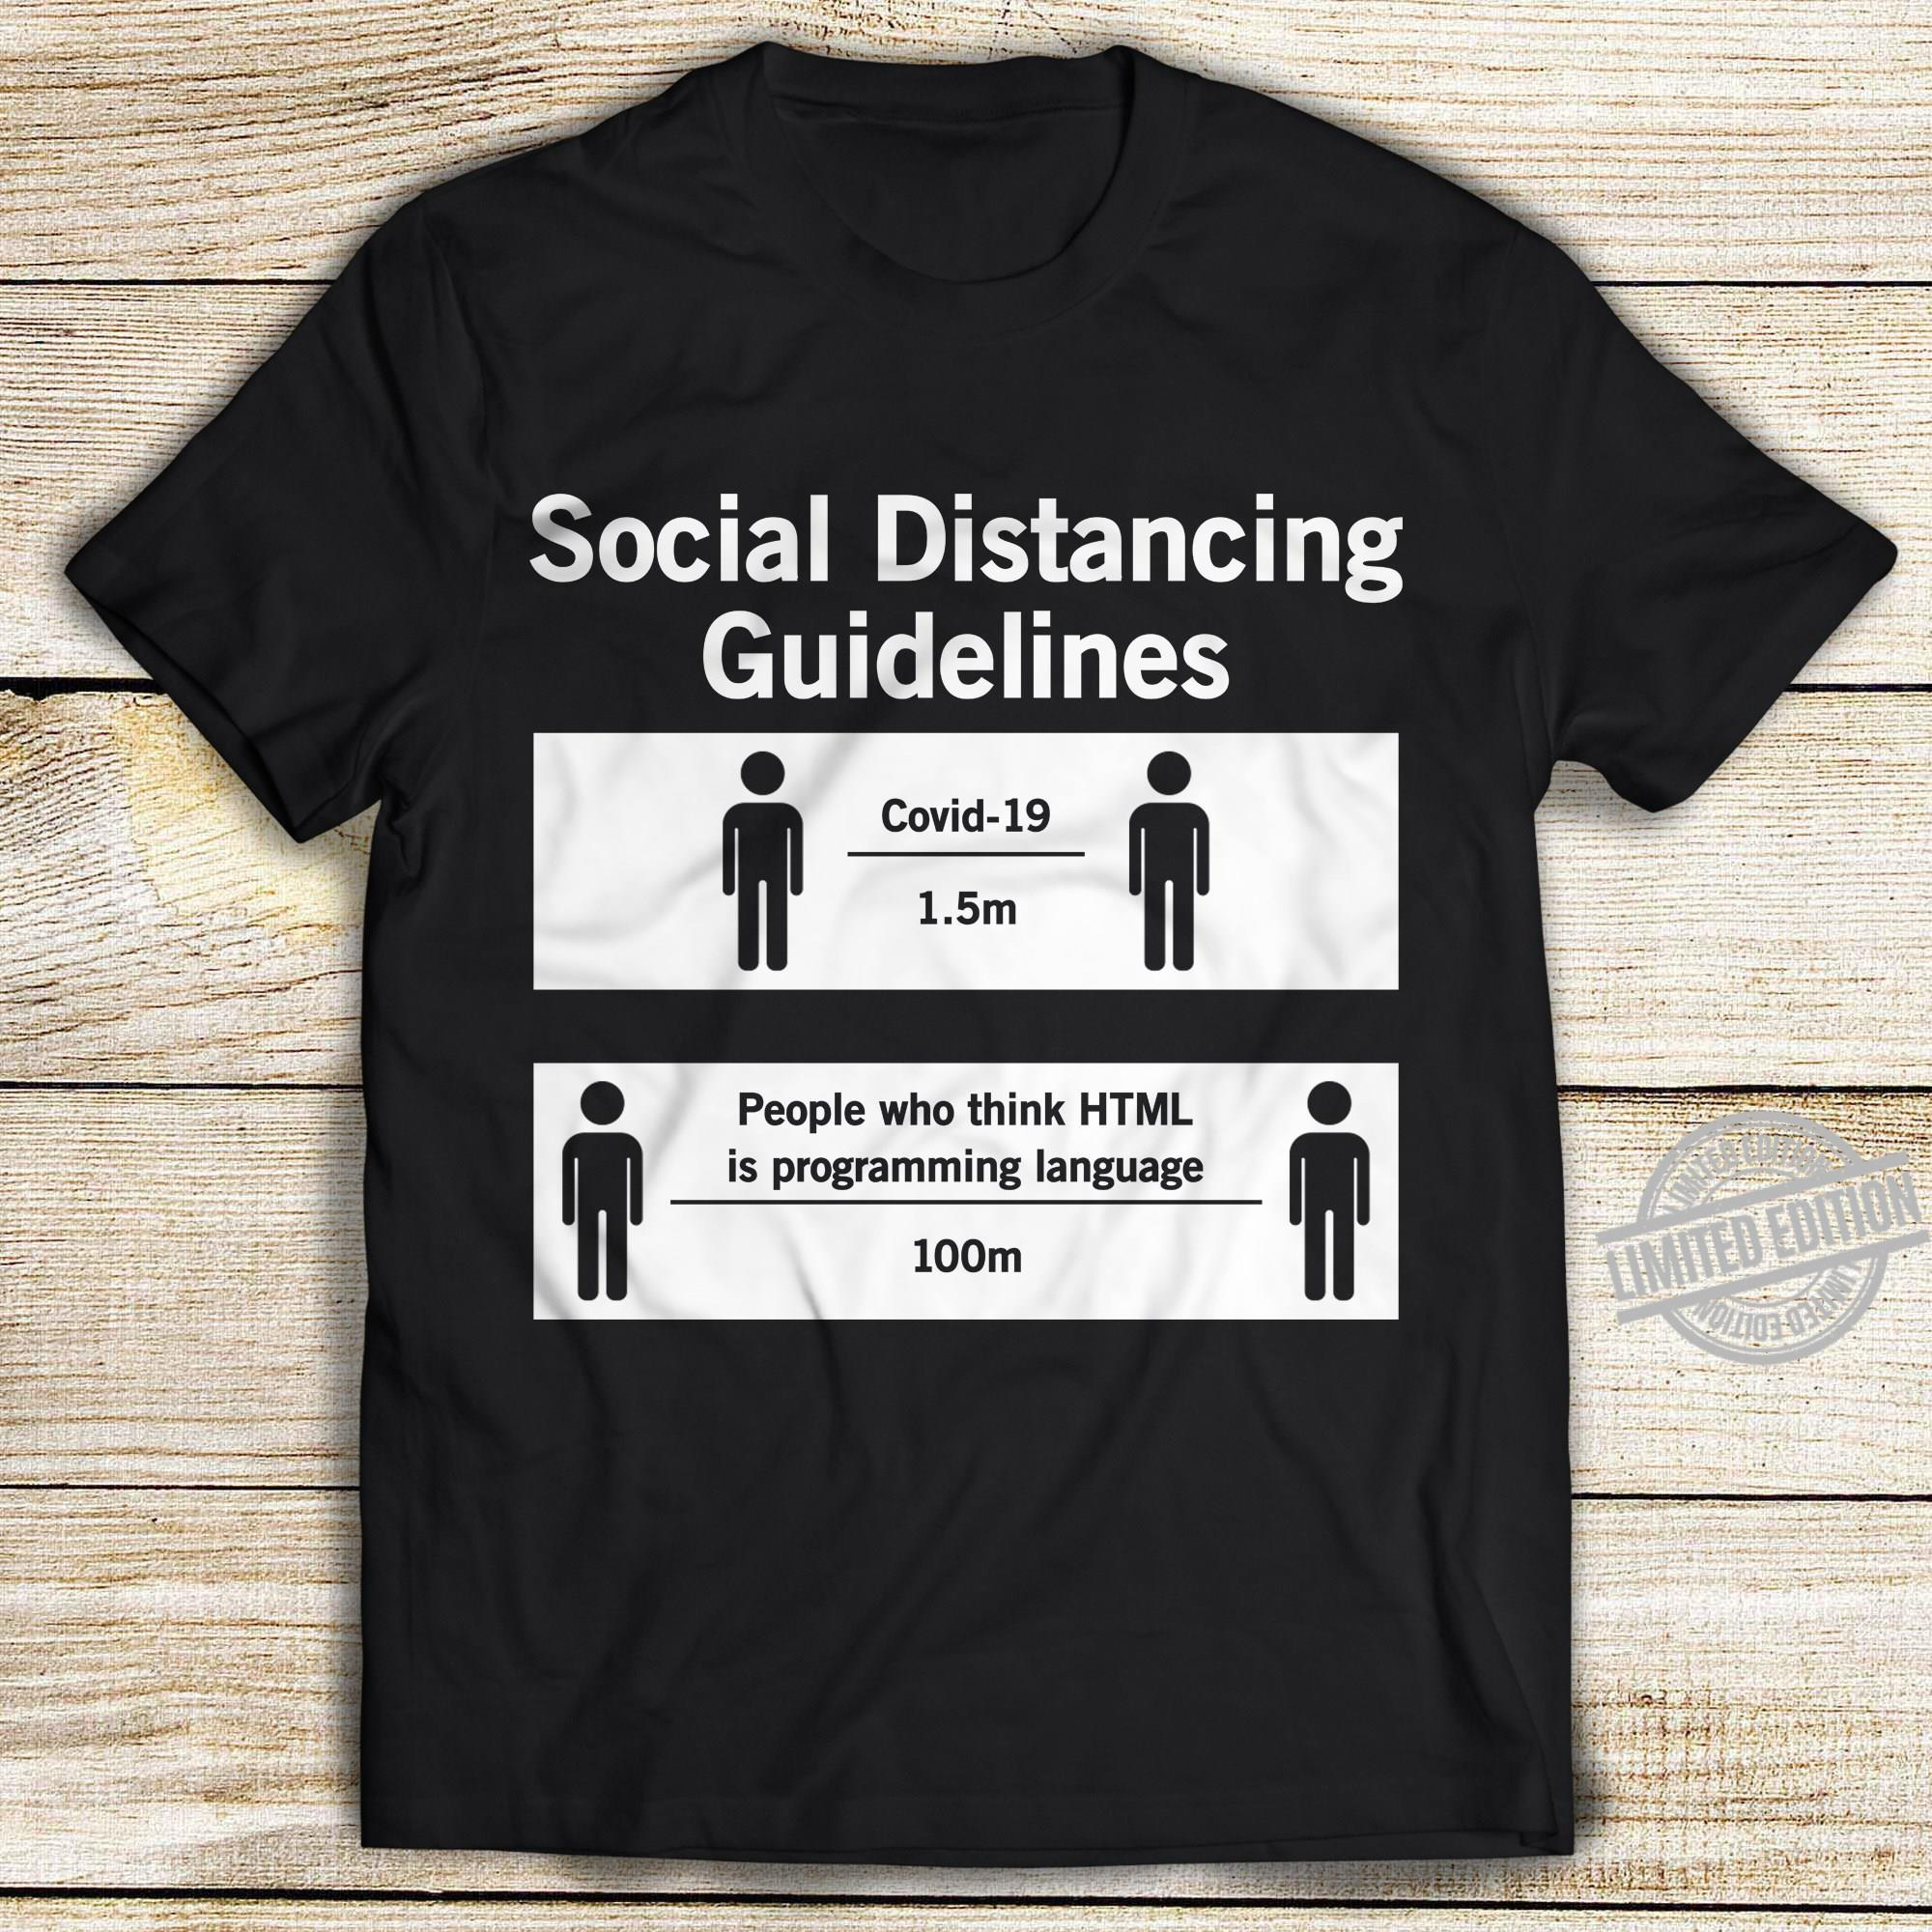 Social Distancing Guidelines Covid 19 1.5m People Who Think HTML Is Programming Language 100m Shirt